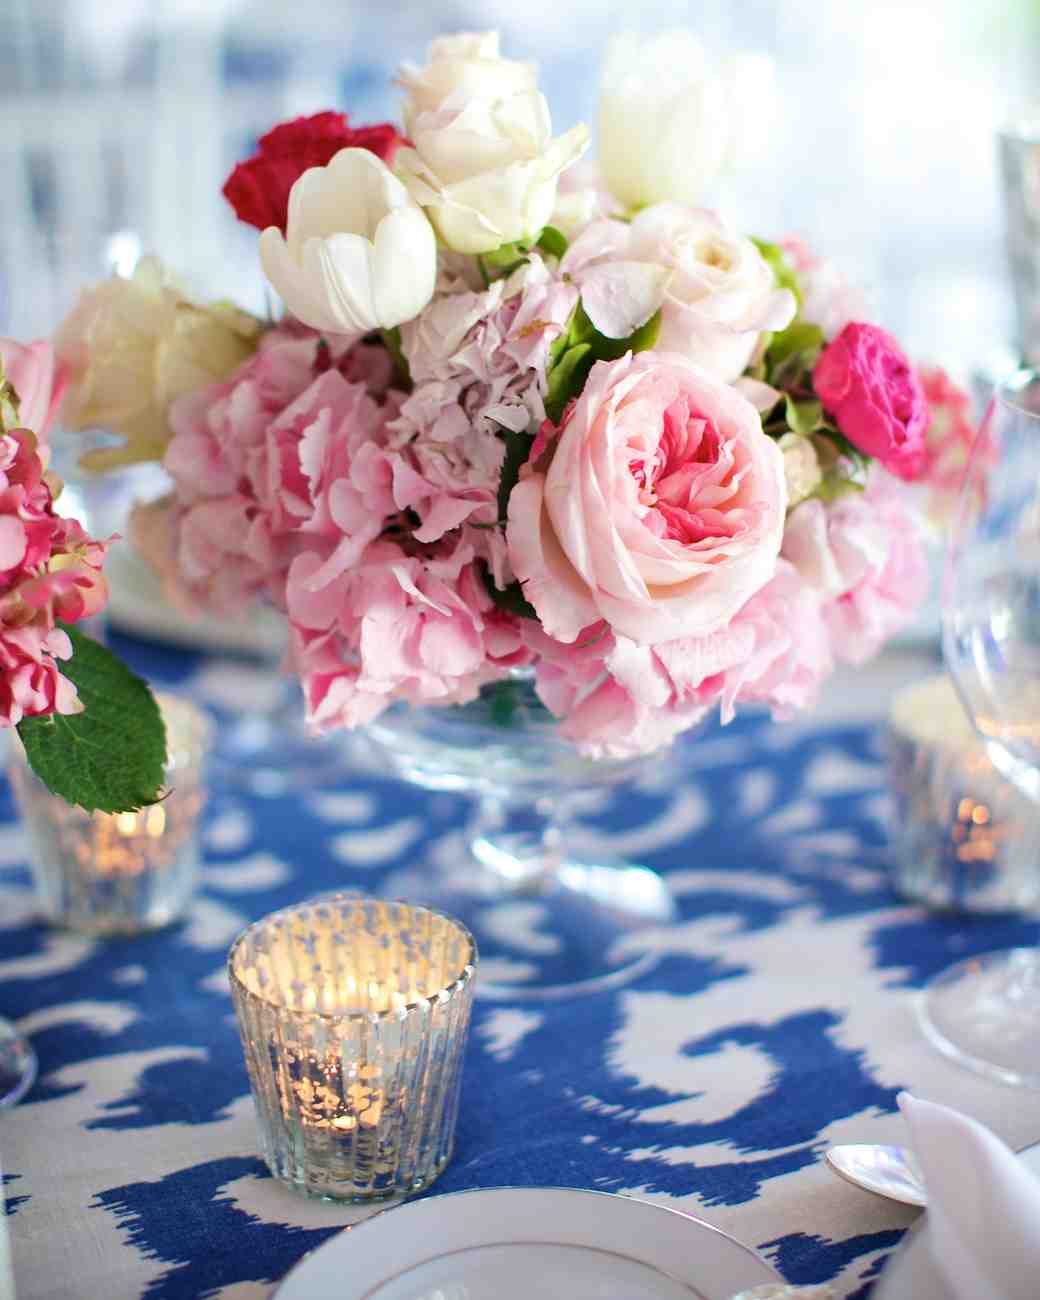 7 Decor Ideas For A Valentine S Day Party Martha Stewart Weddings